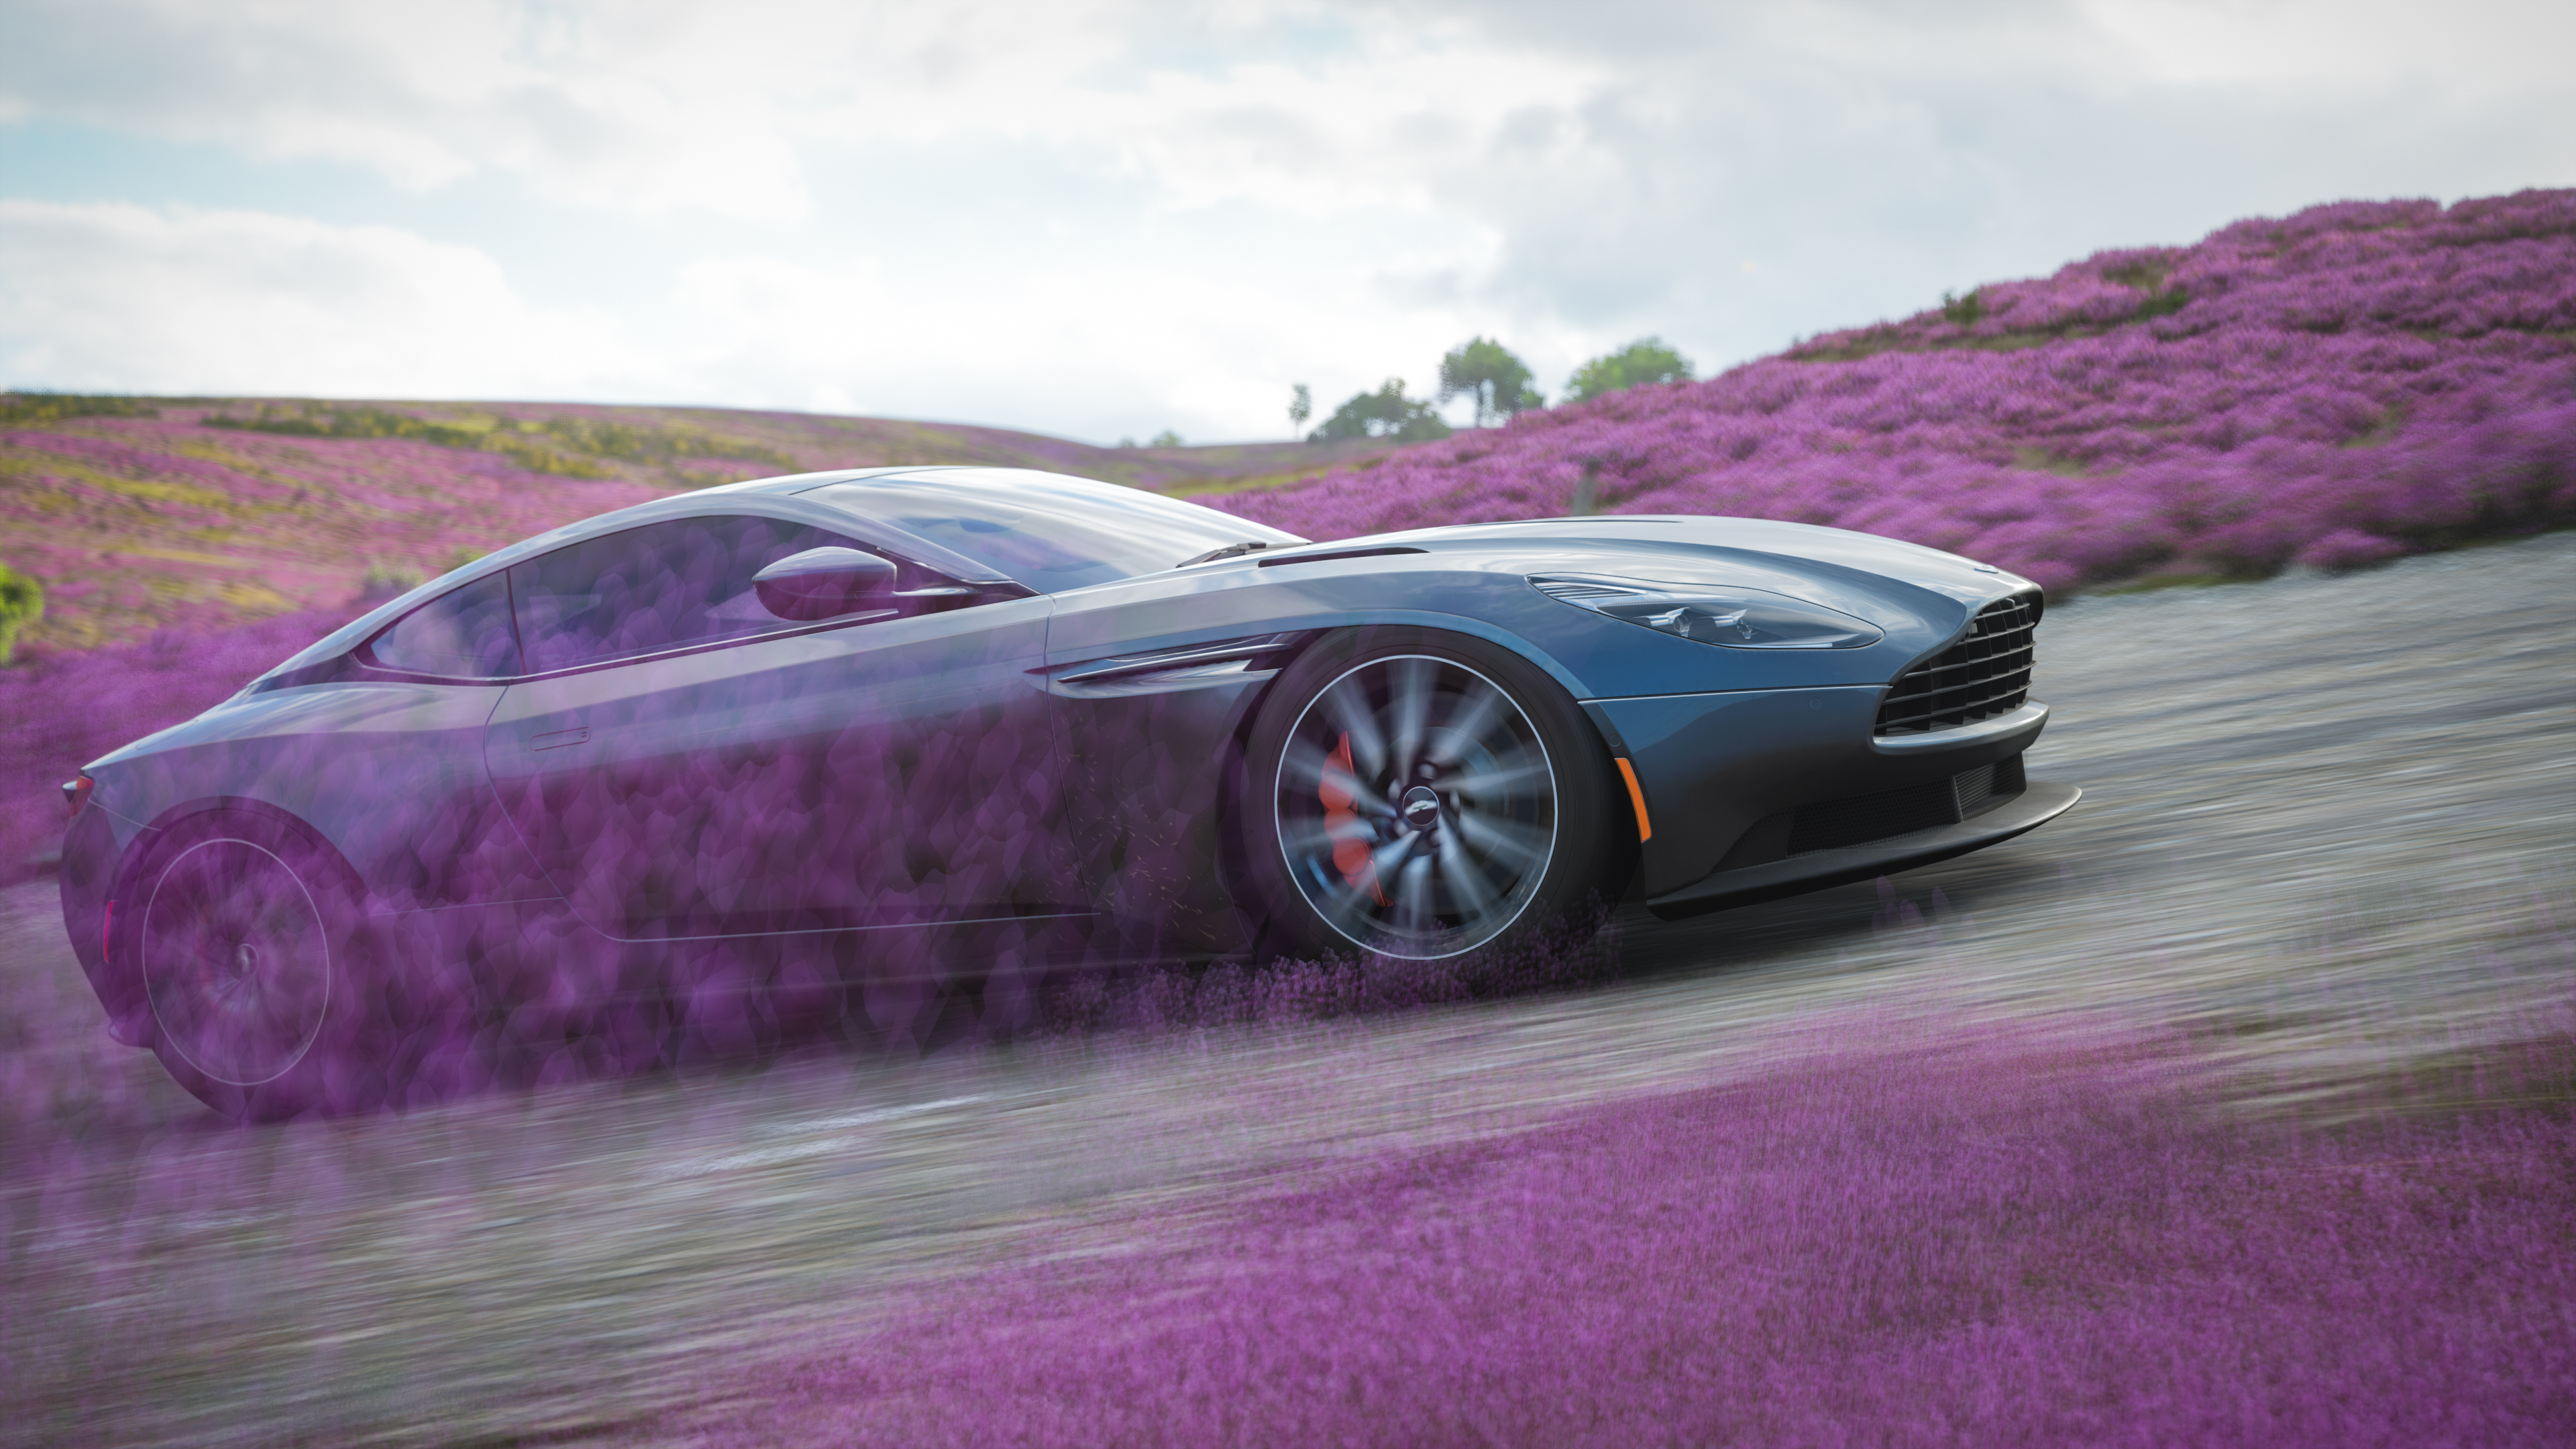 Aston Martin Db11 Forza Horizon 4 Hd Games 4k Wallpapers Images Backgrounds Photos And Pictures